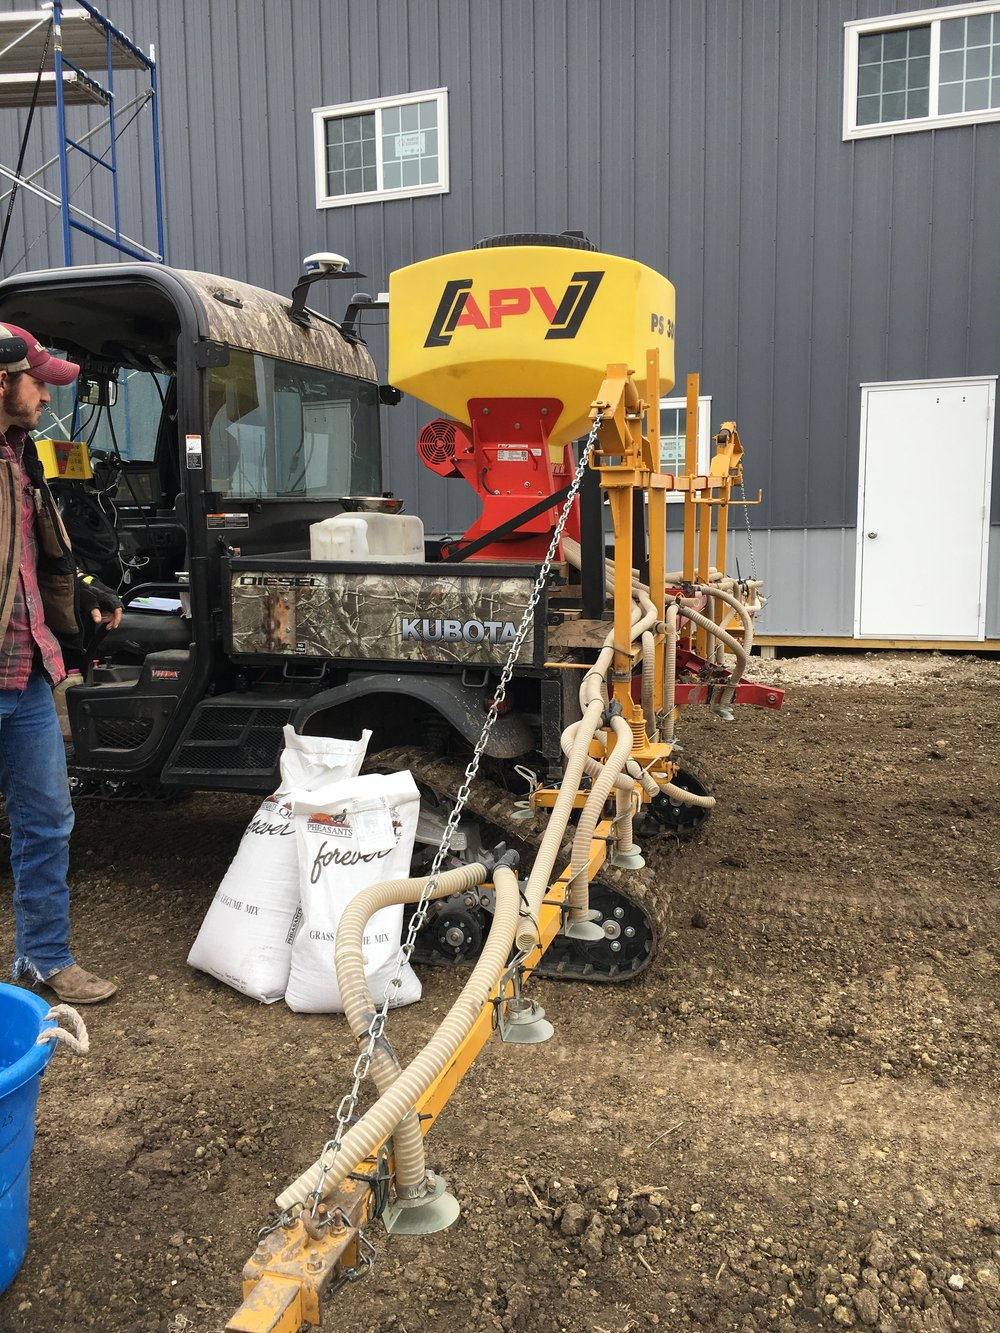 Trenton Carley of FullThrottle Ag Service air seeded the entire acreage of the native prairie restoration.  The air flow seeding systems provides an even distribution of coverage for the very tiny seeds.